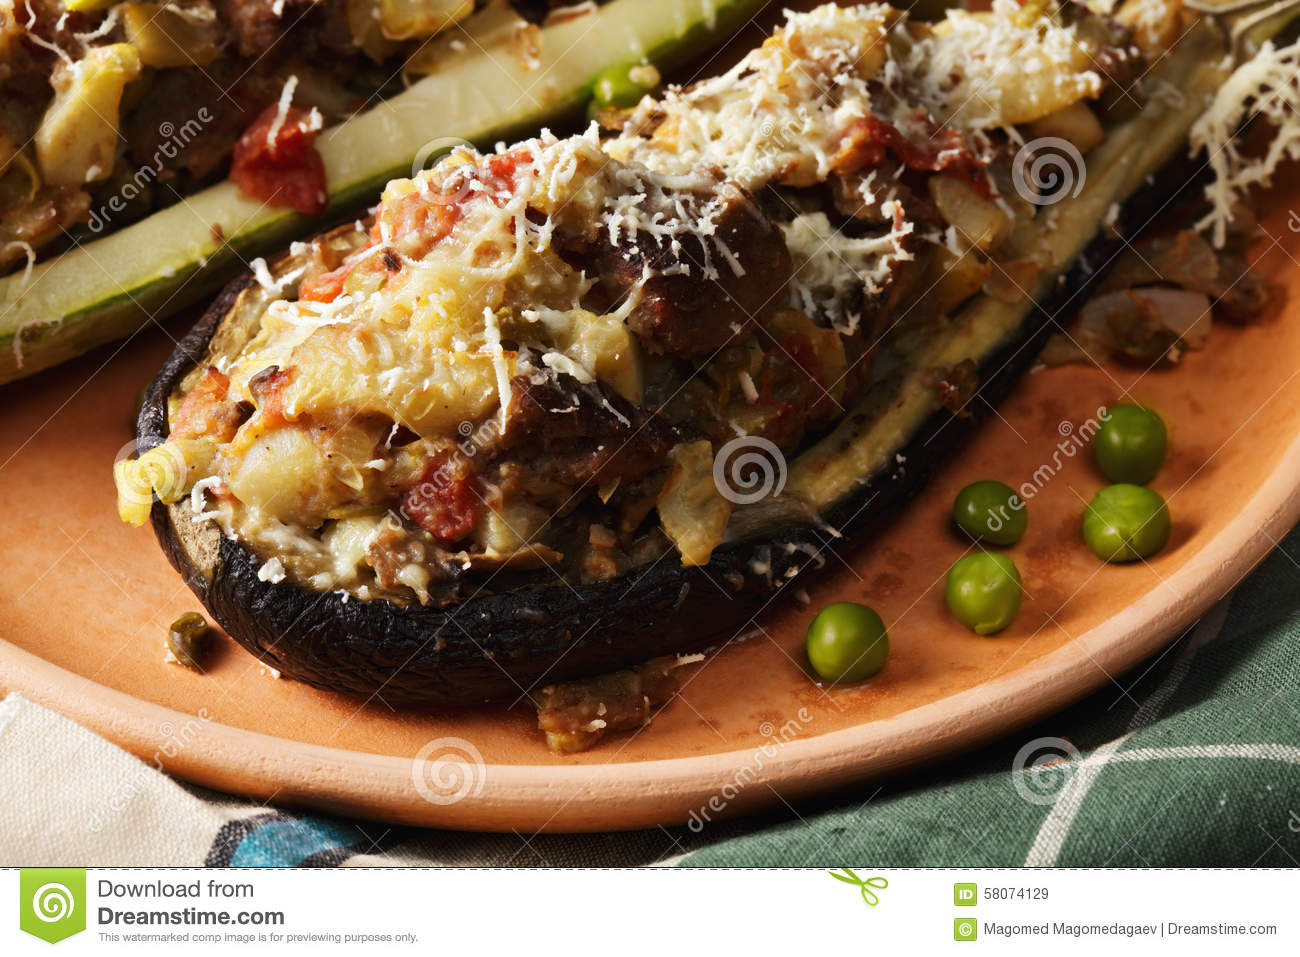 ... boats-closeup-stuffed-meat-vegetables-cheese-baked-boat-form-58074129